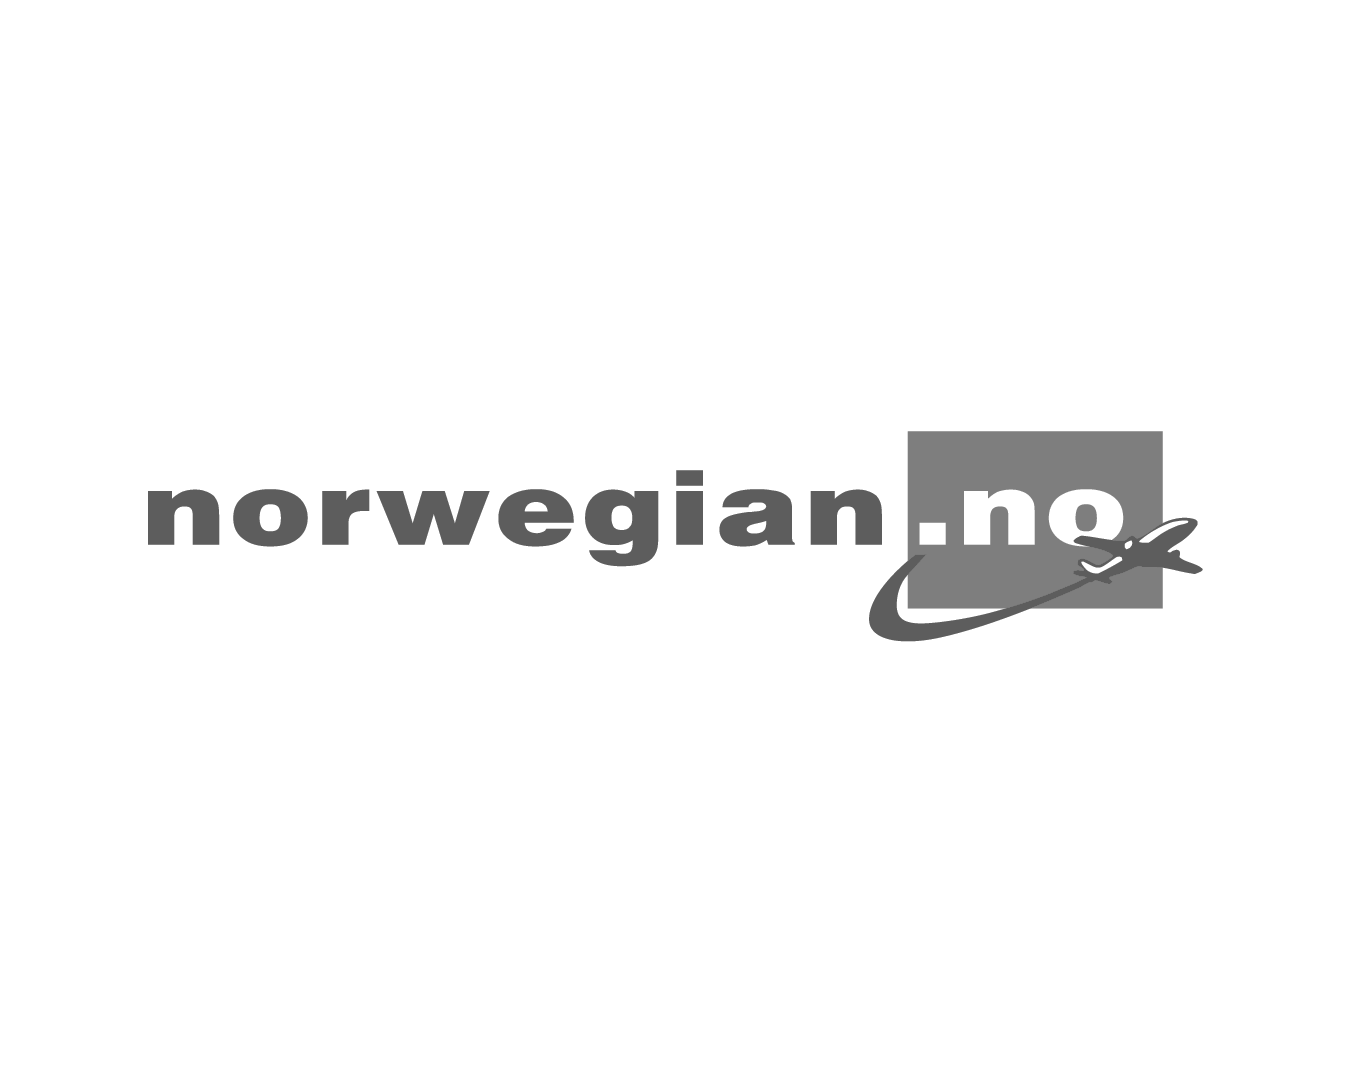 norwegianmagasinet.no